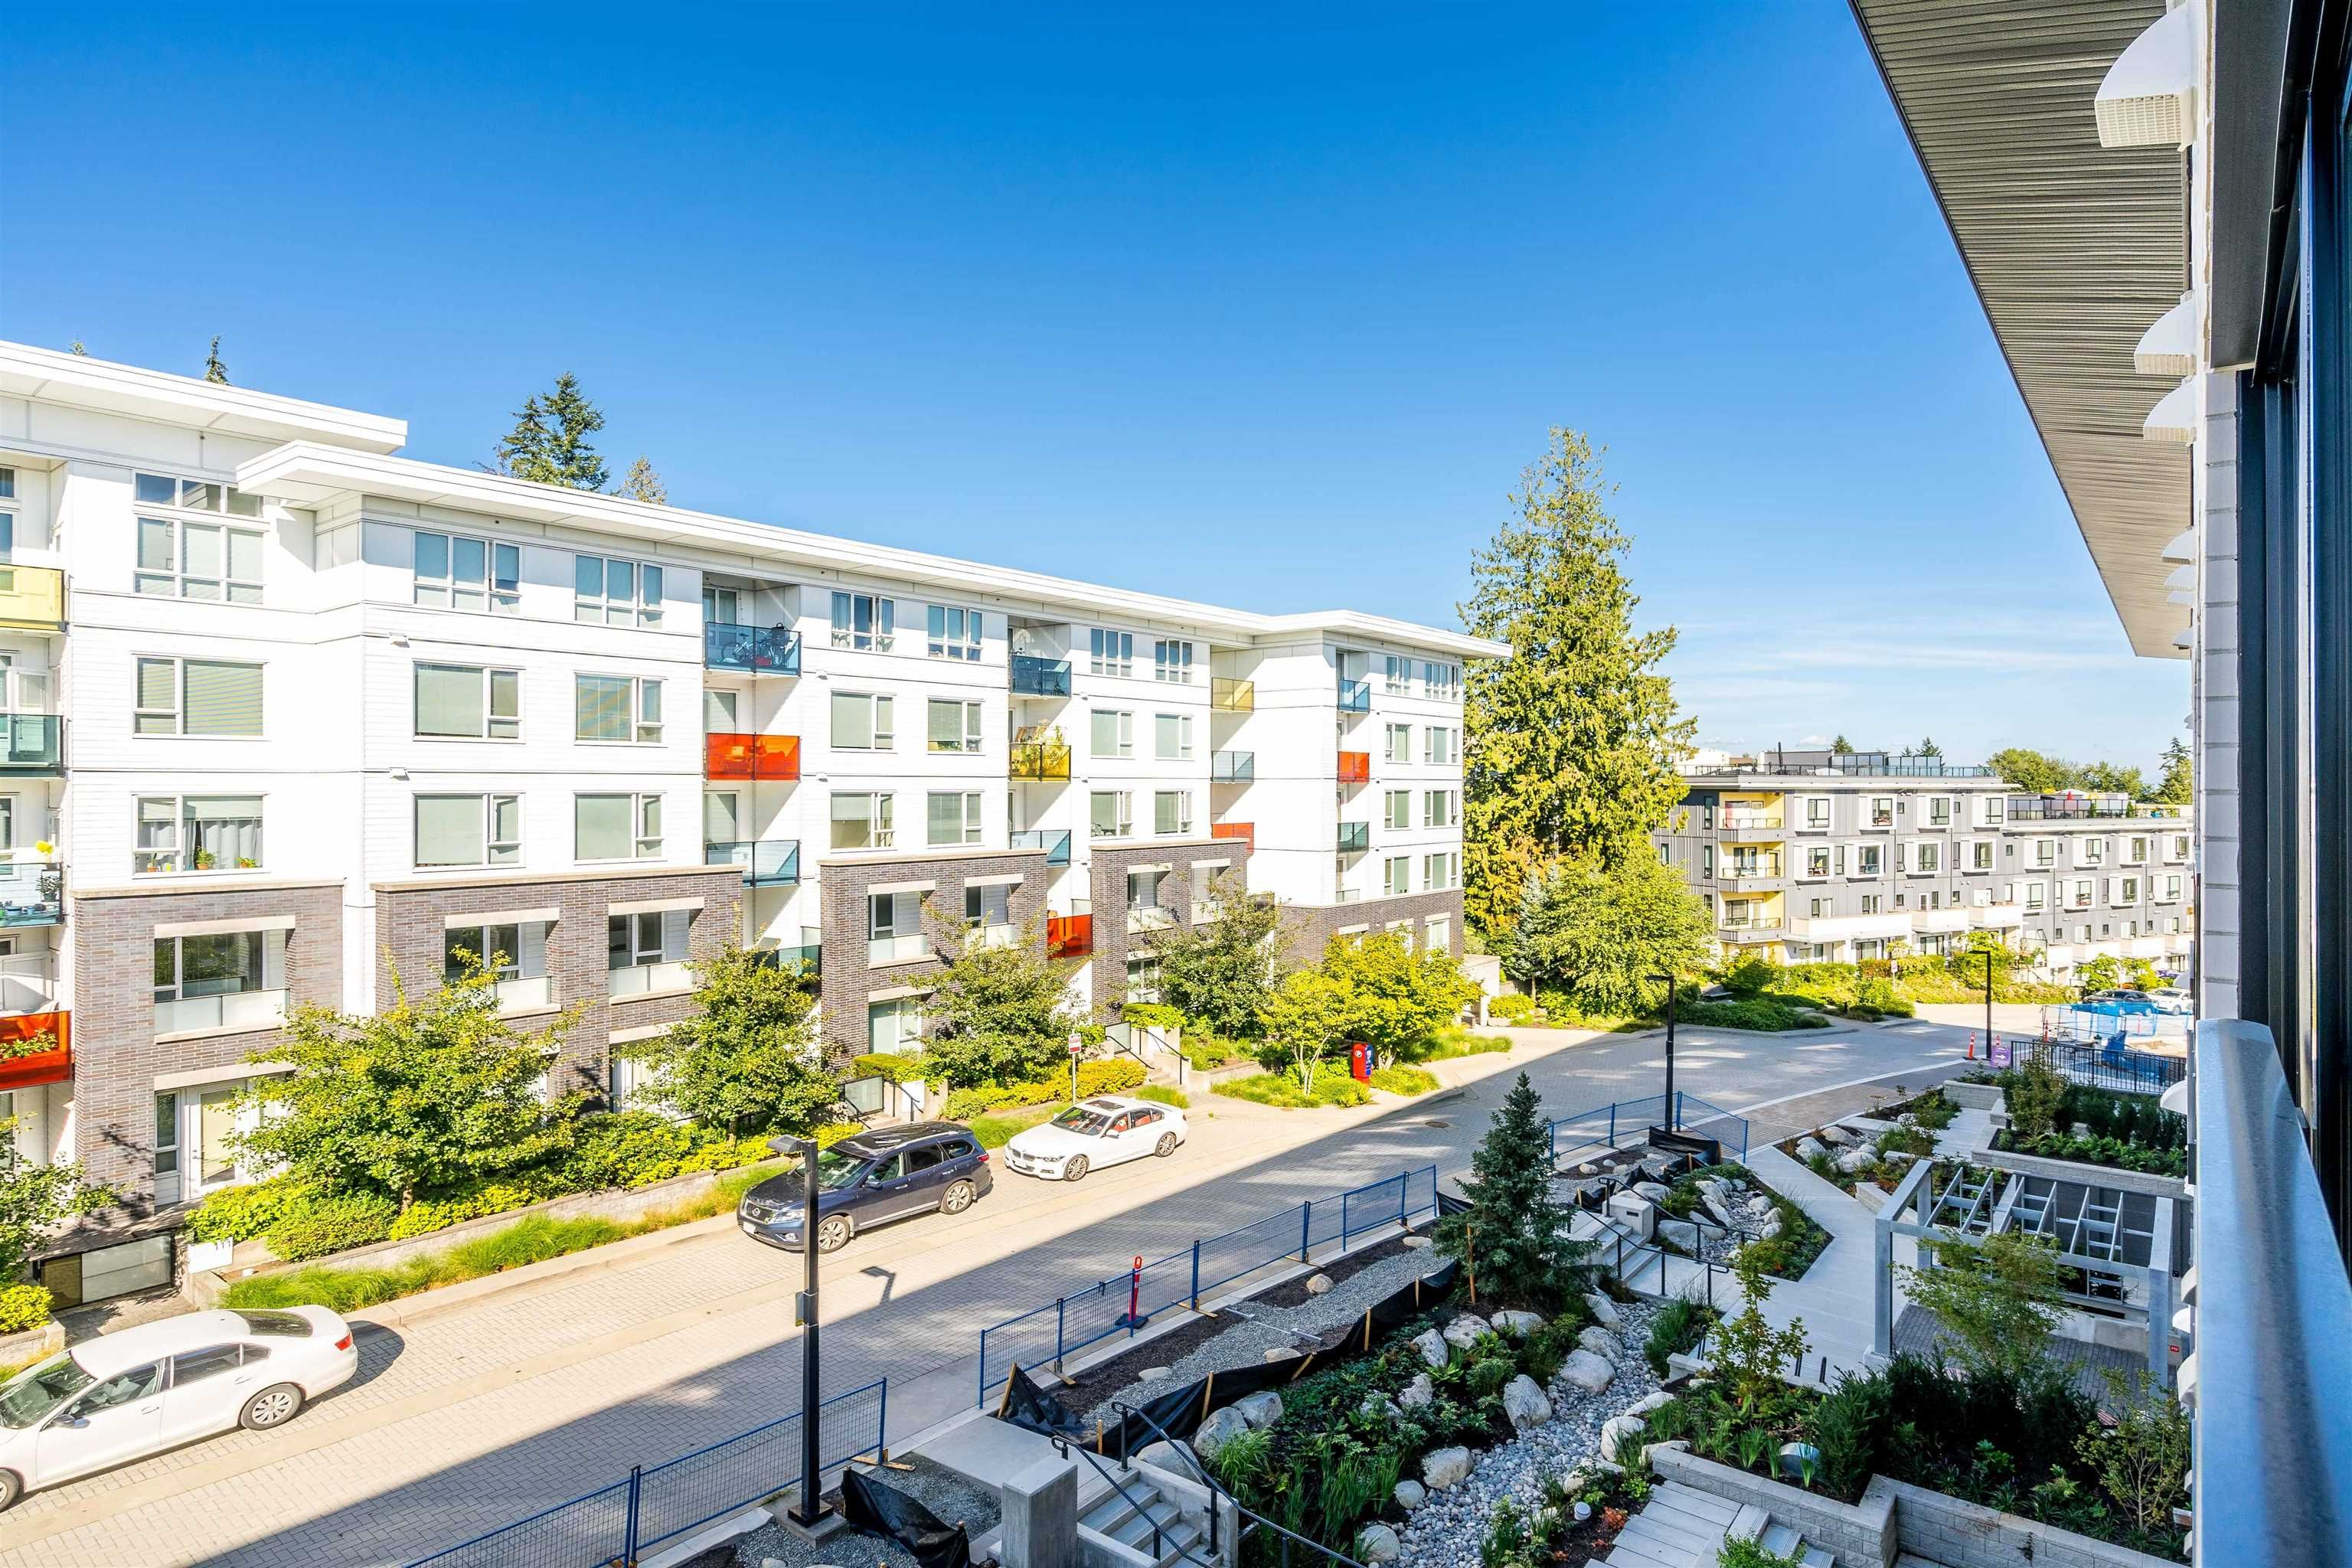 """Main Photo: 404 9228 SLOPES Mews in Burnaby: Simon Fraser Univer. Condo for sale in """"FRASER BY MOSAIC"""" (Burnaby North)  : MLS®# R2613413"""